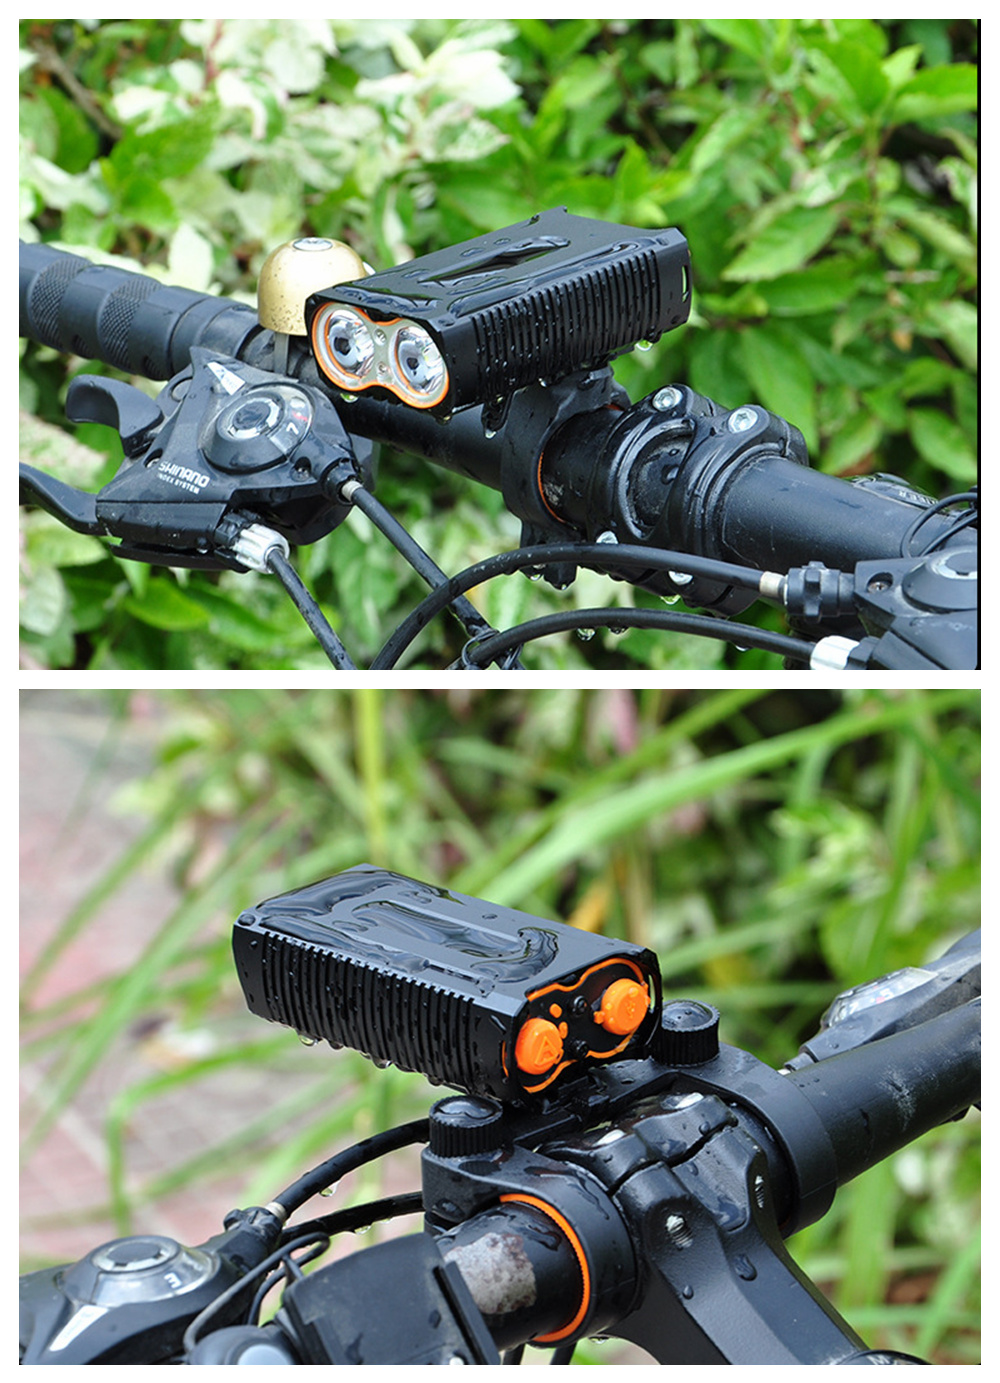 ZHISHUNJIA Y6 USB Charged High Bright Bicycle Lamp with Battery Waterproof Lamp- Black